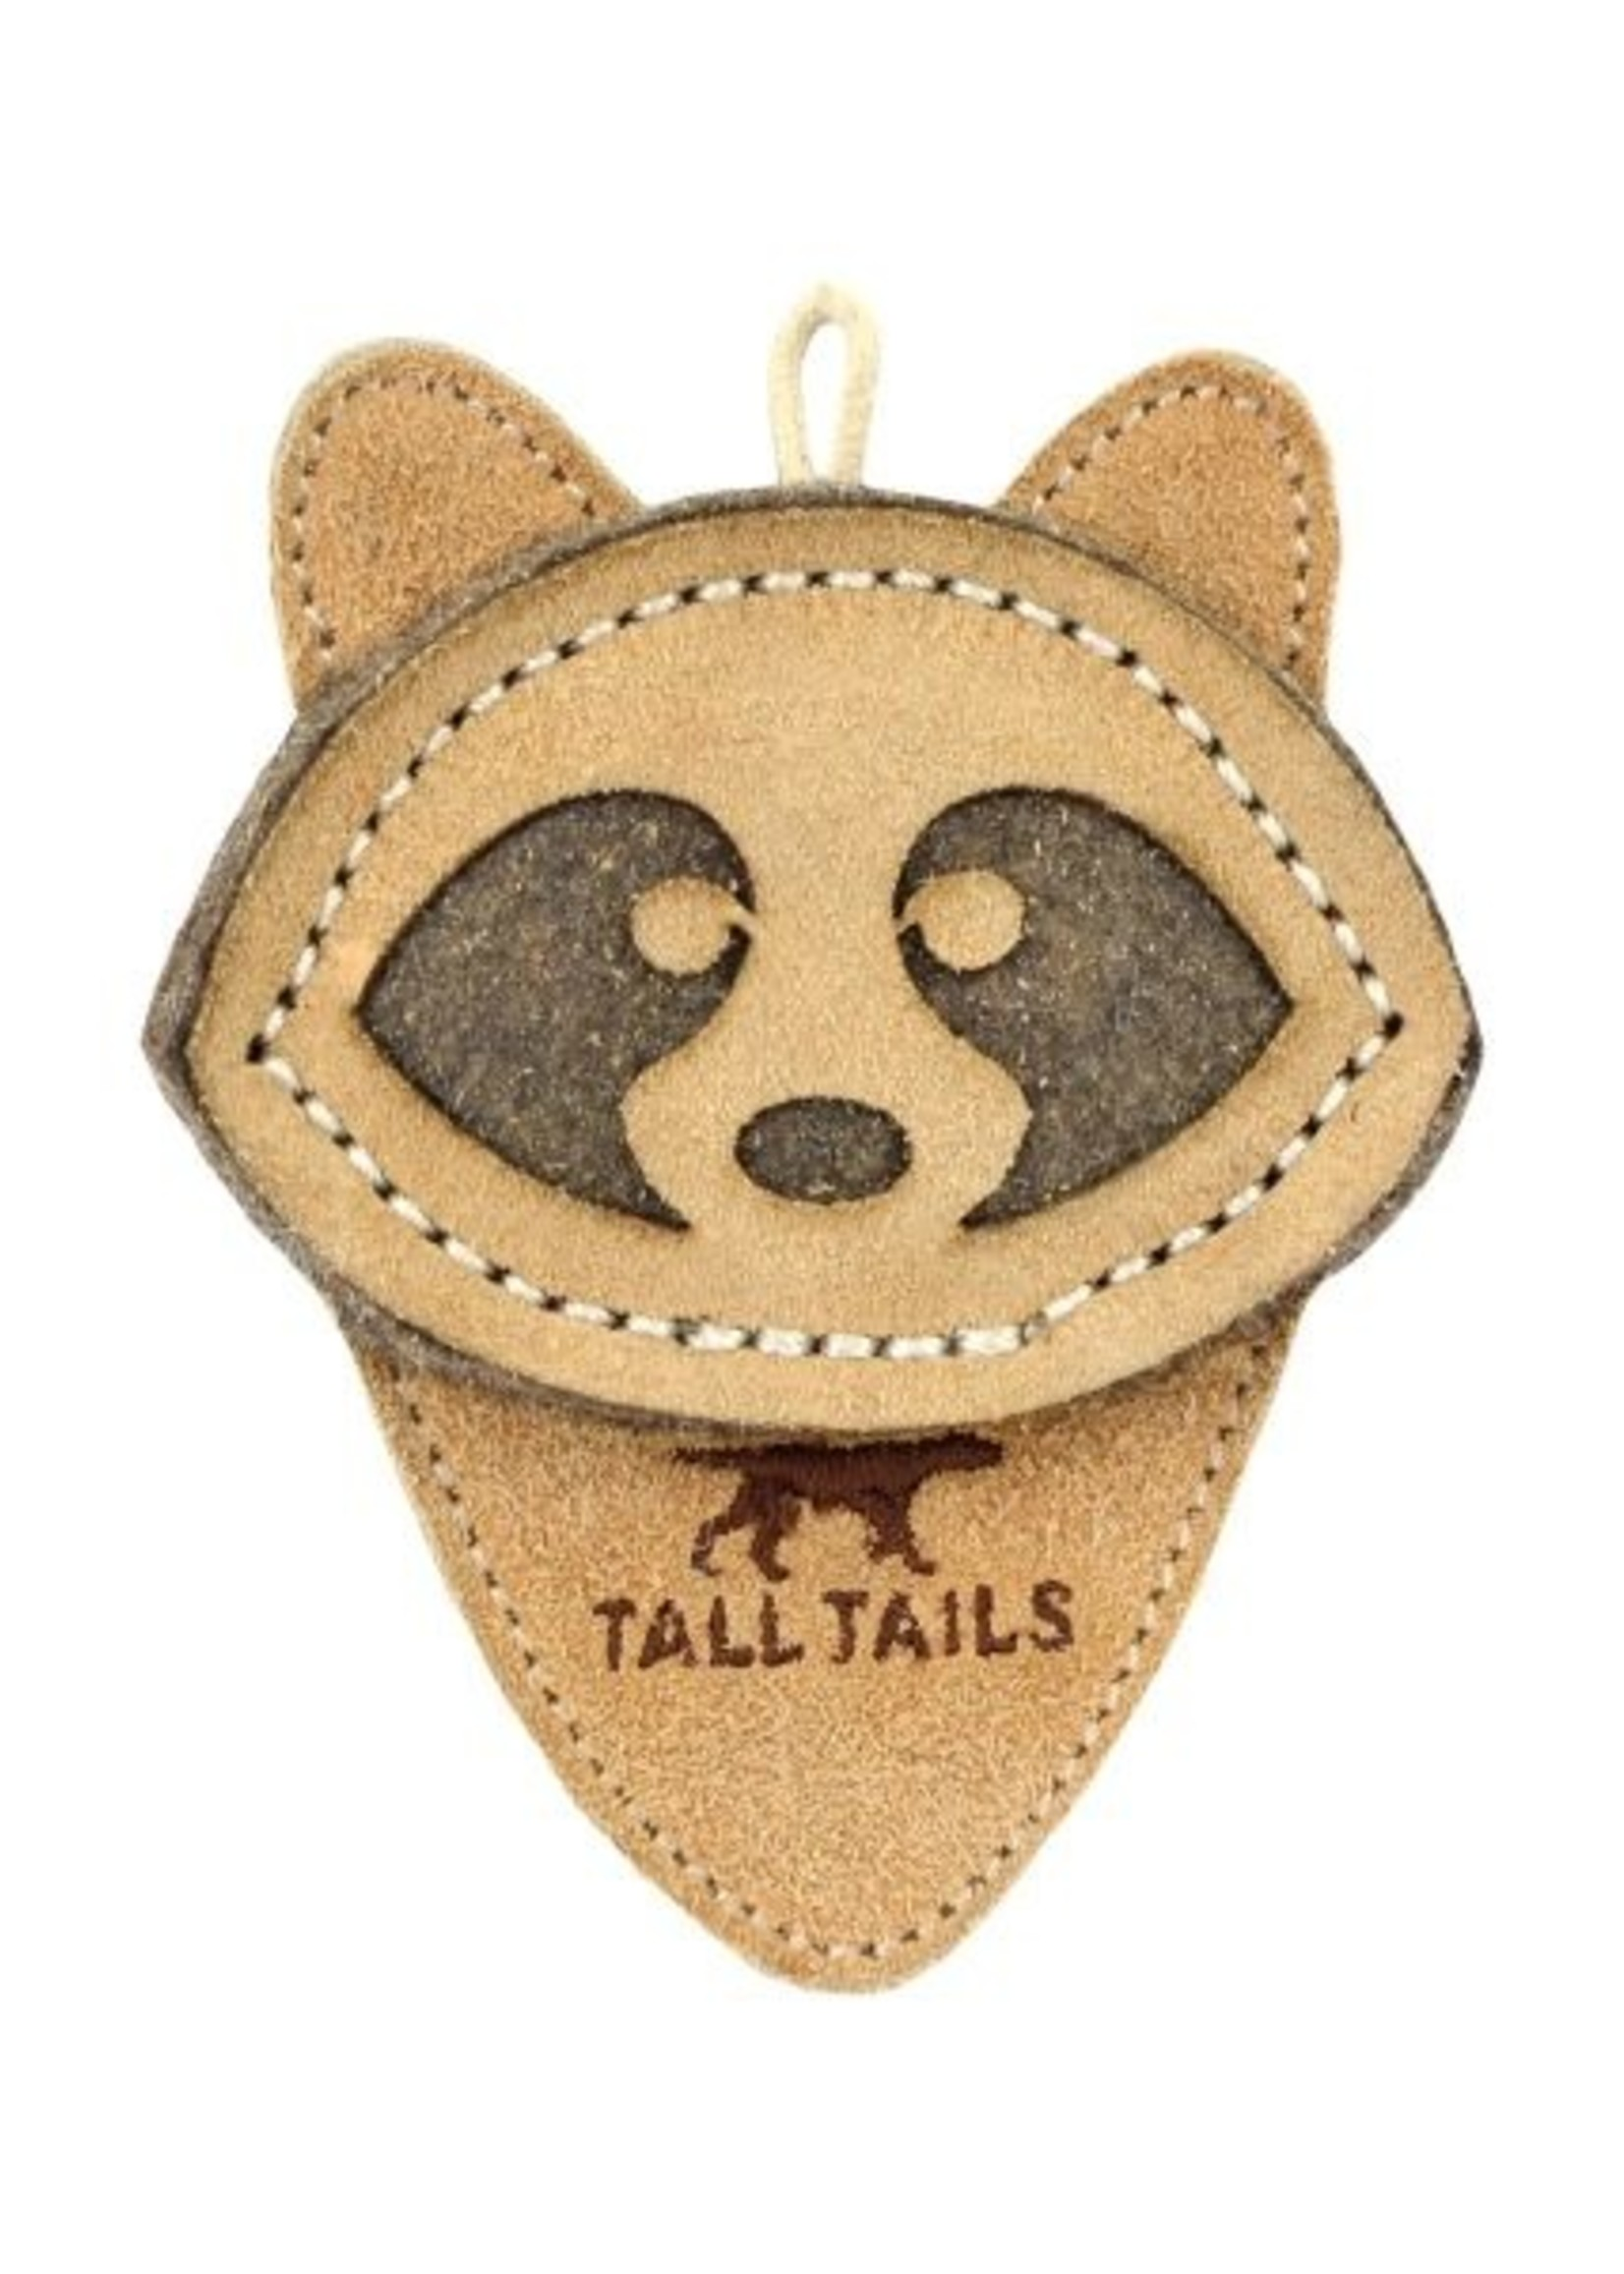 Tall Tails Tall Tails Leather Scrappy Raccoon